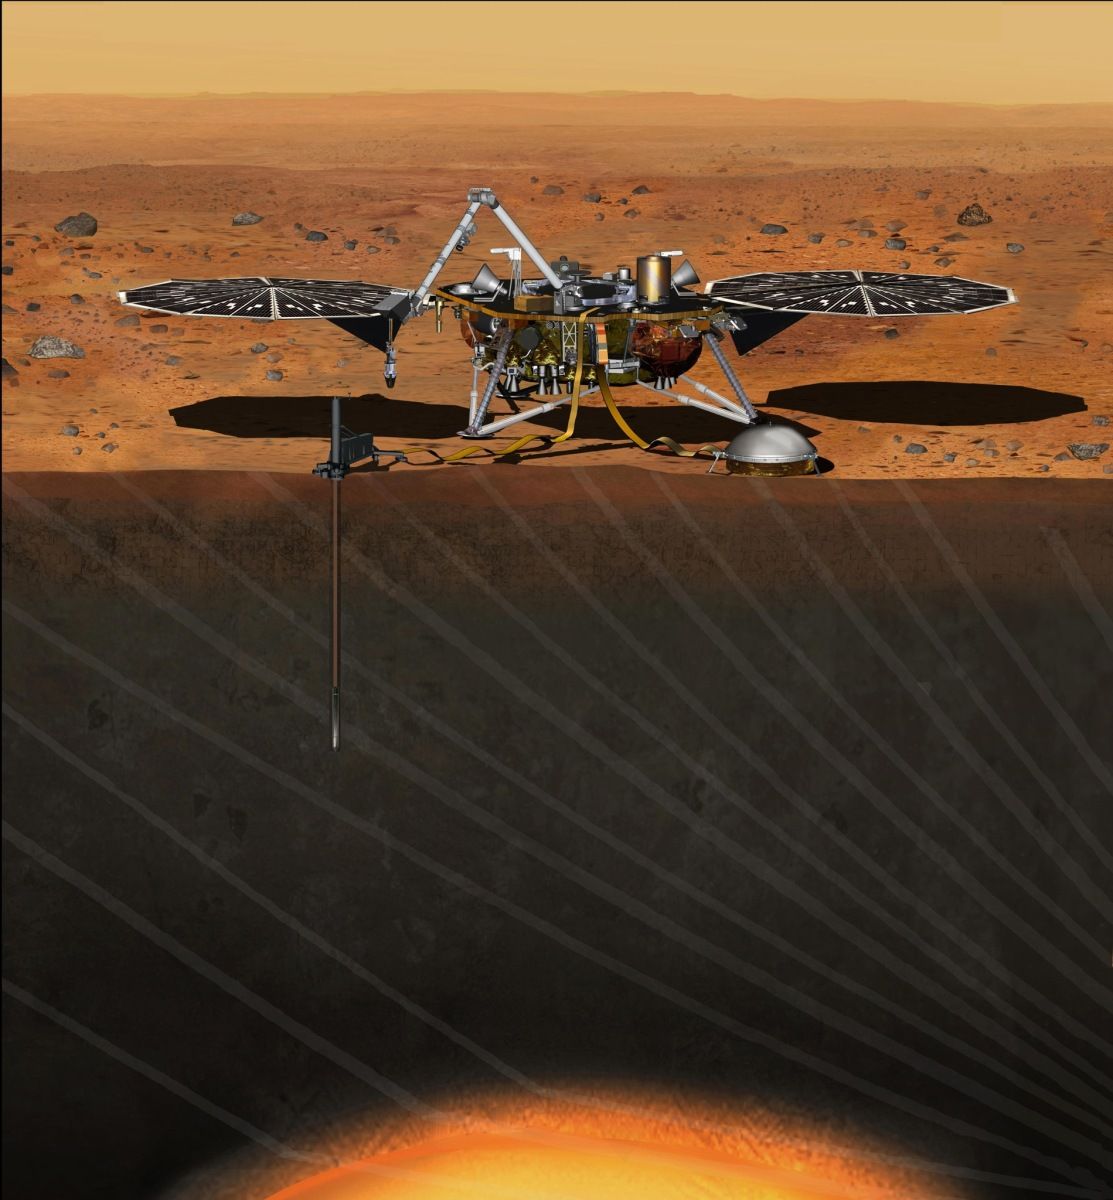 Peering Into The Interior of Mars - The Mars InSight Mission